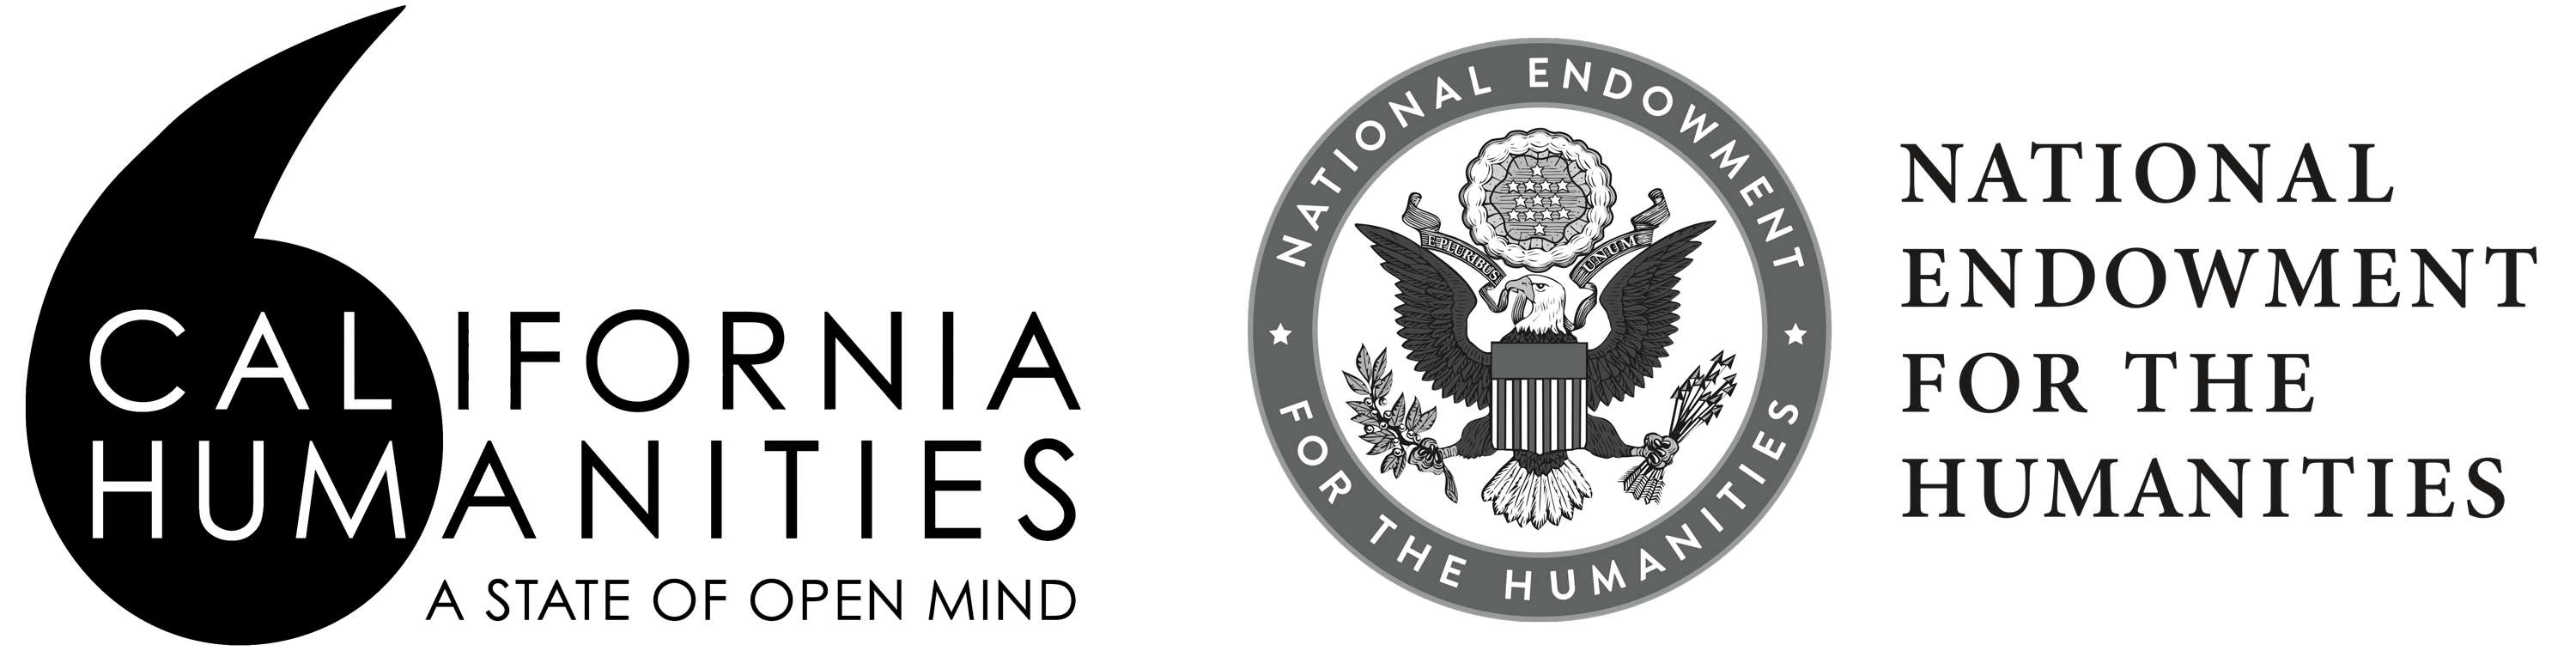 California Humanities National Endowment for the Humanities